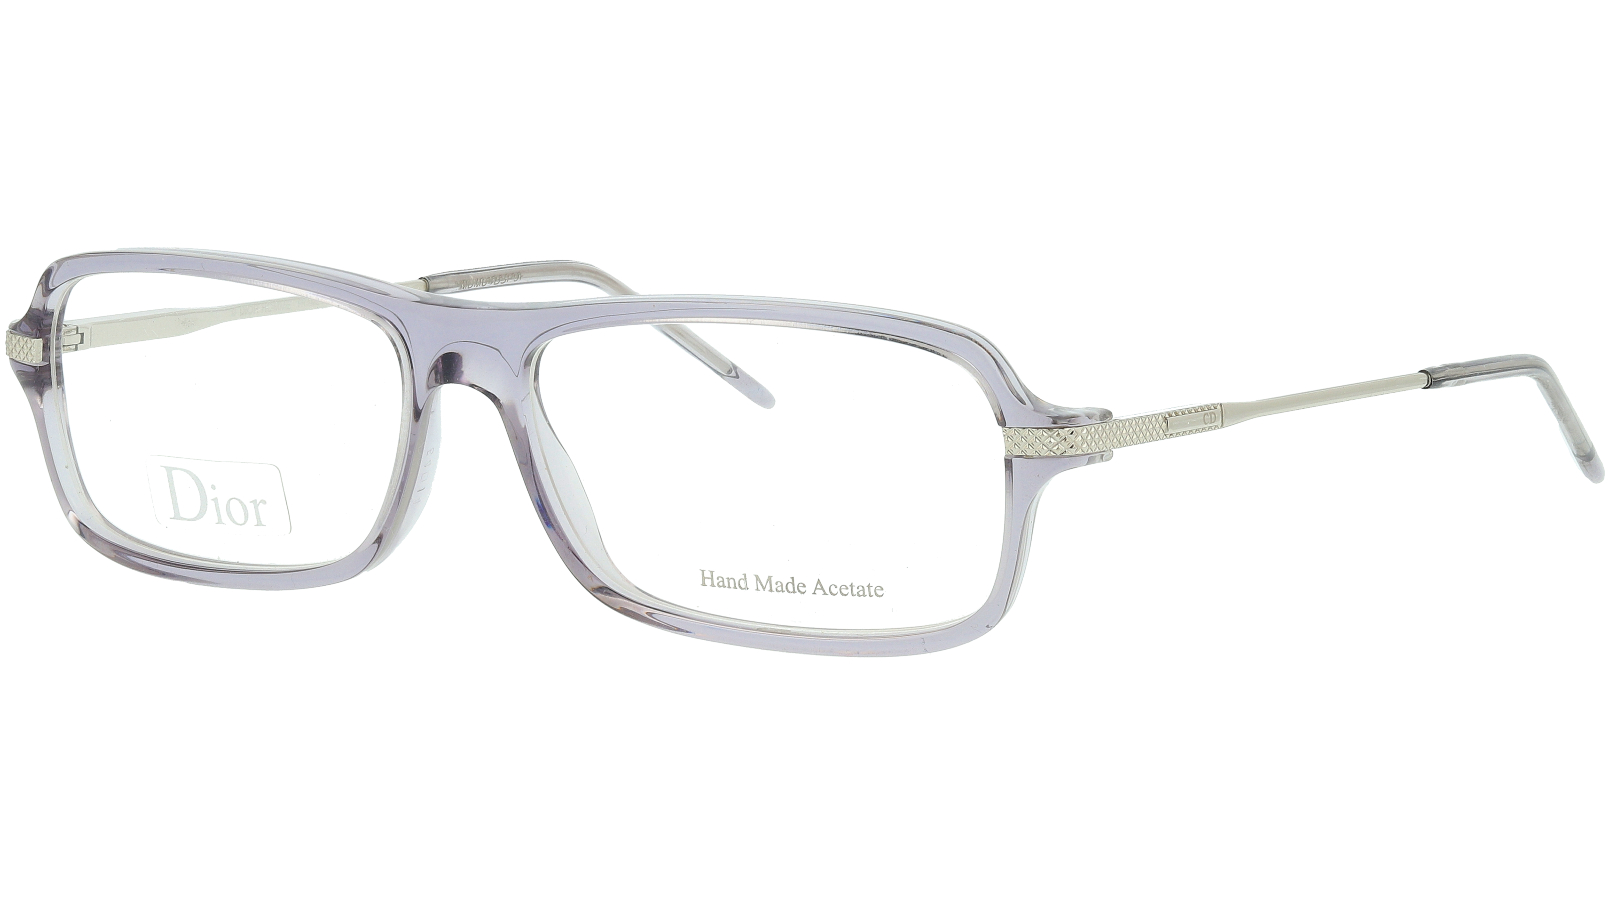 Dior HOMME BlackTIE125 RR8 54 Clear Glasses